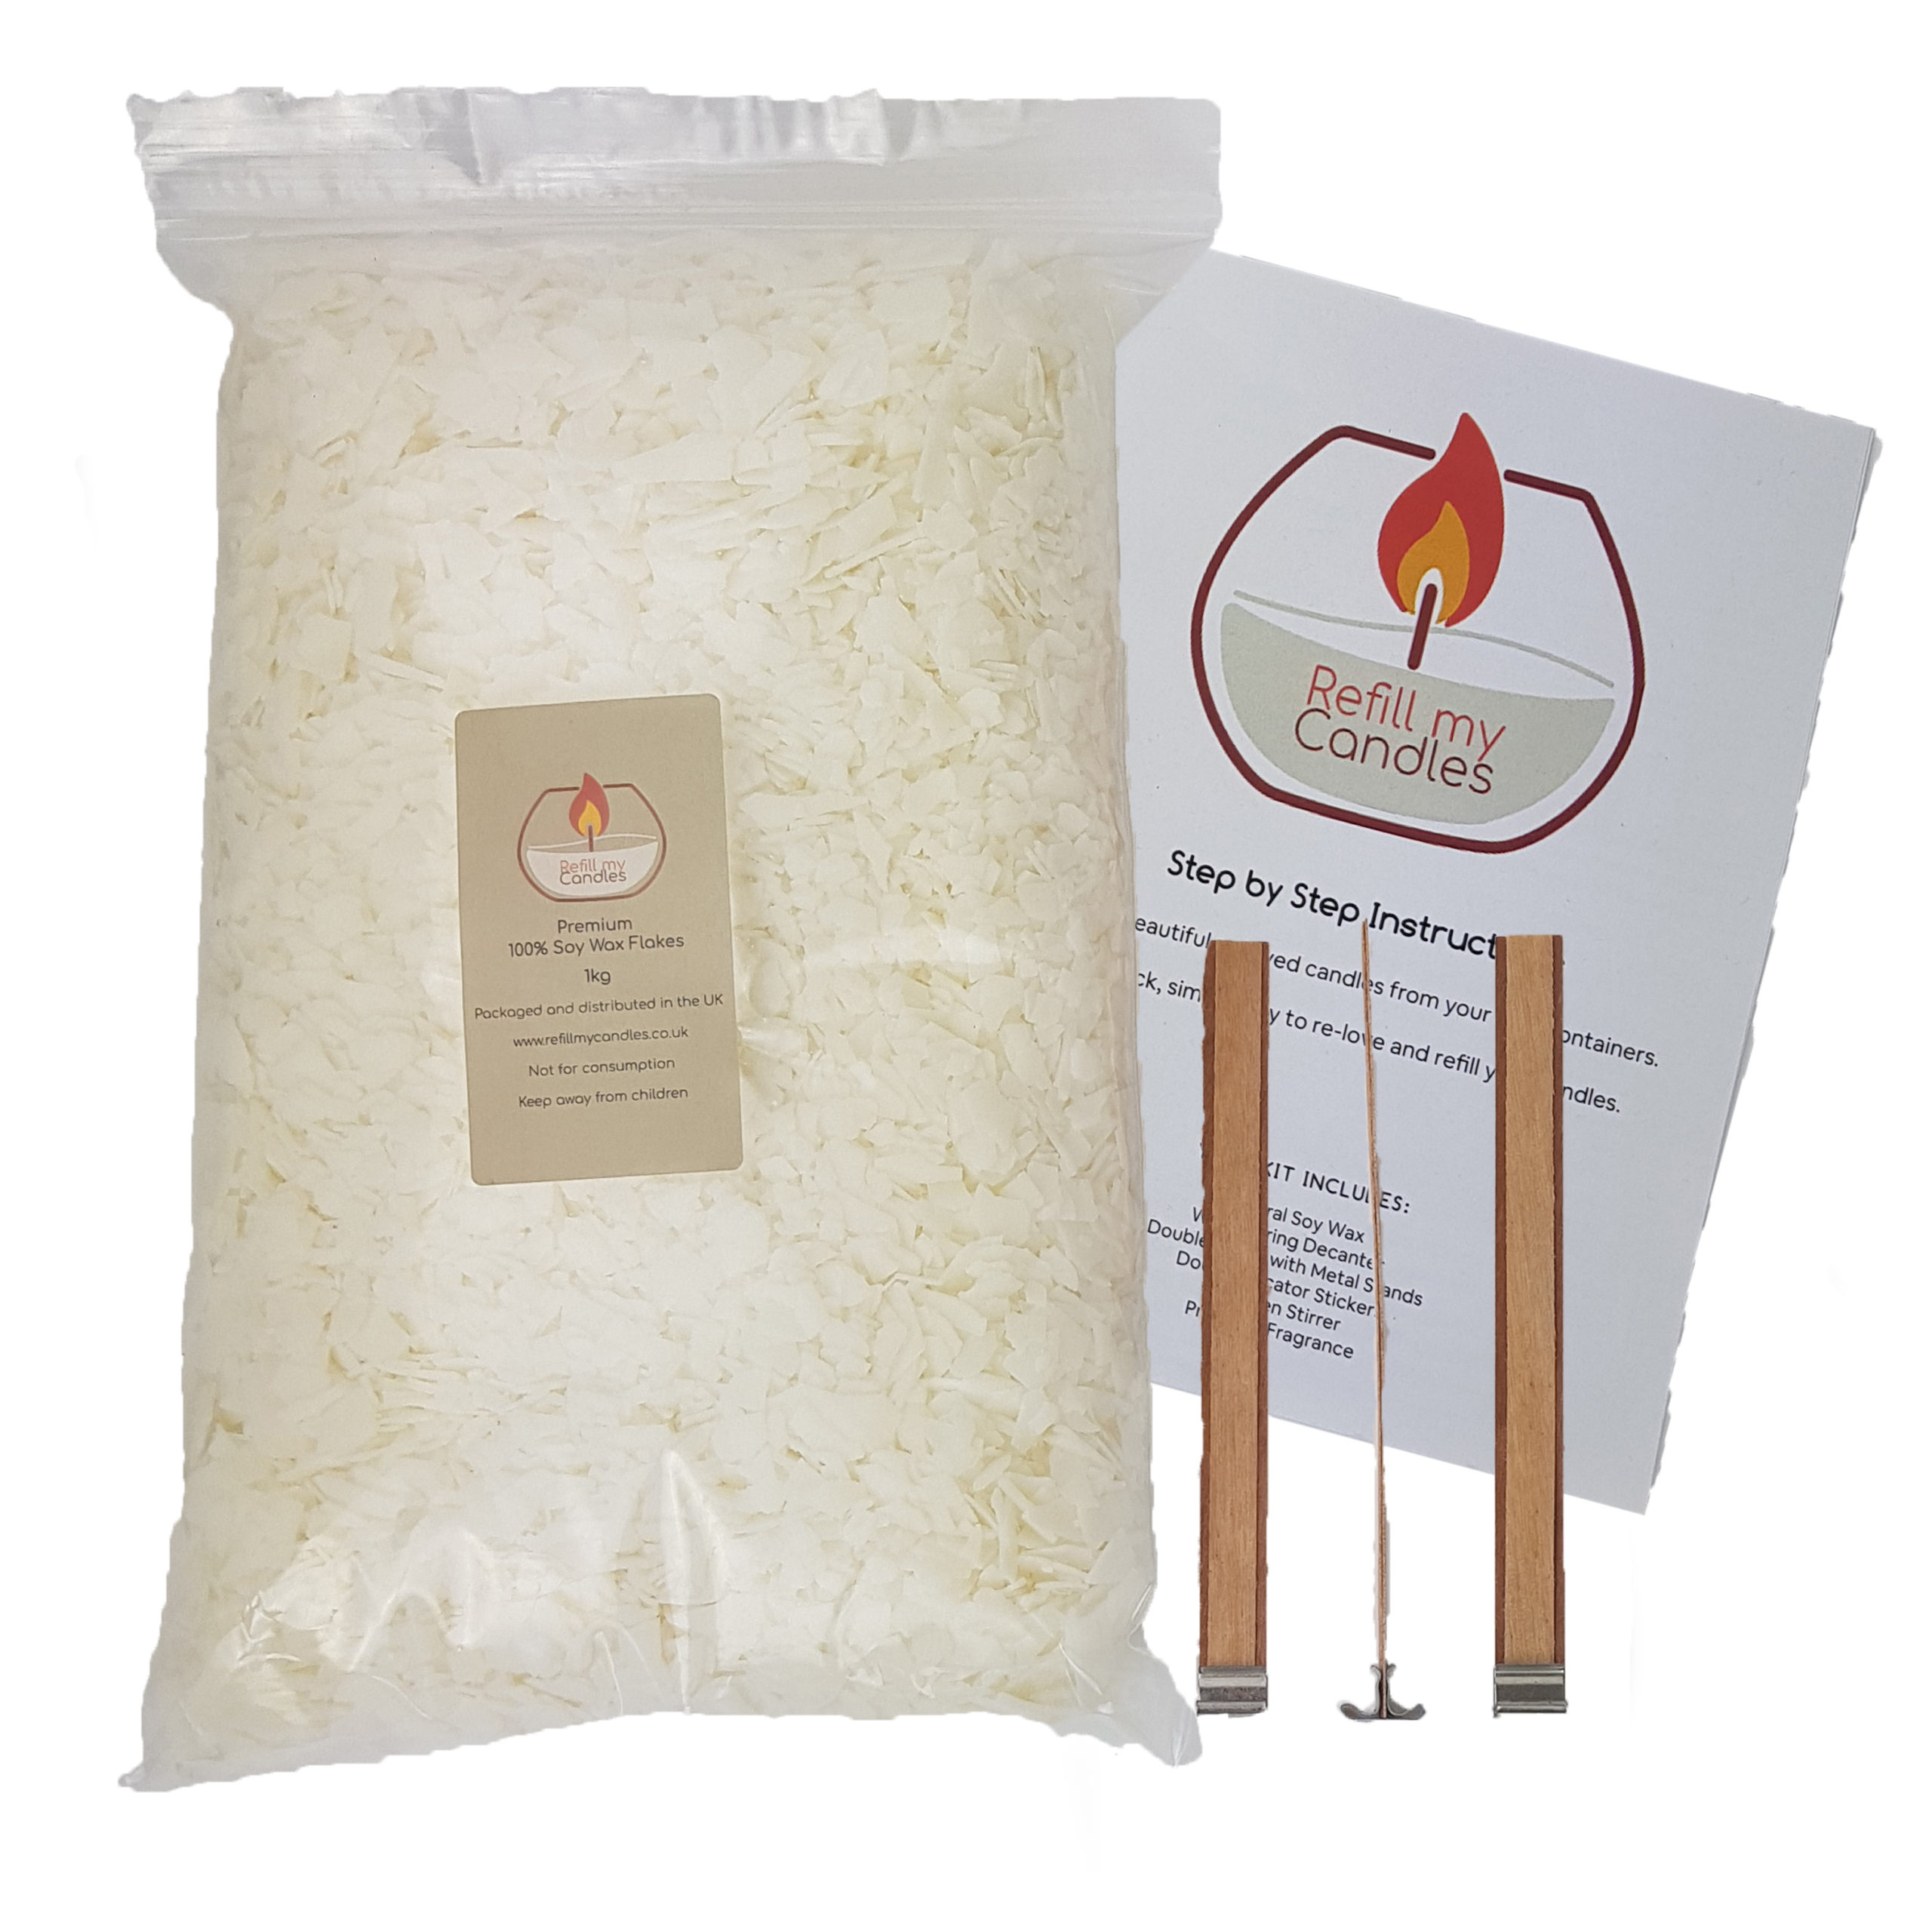 Top up candle kit – 1KG 100% Natural Soy Wax & 3 x 15cm Tall Double Woodwicks pack & Instructions